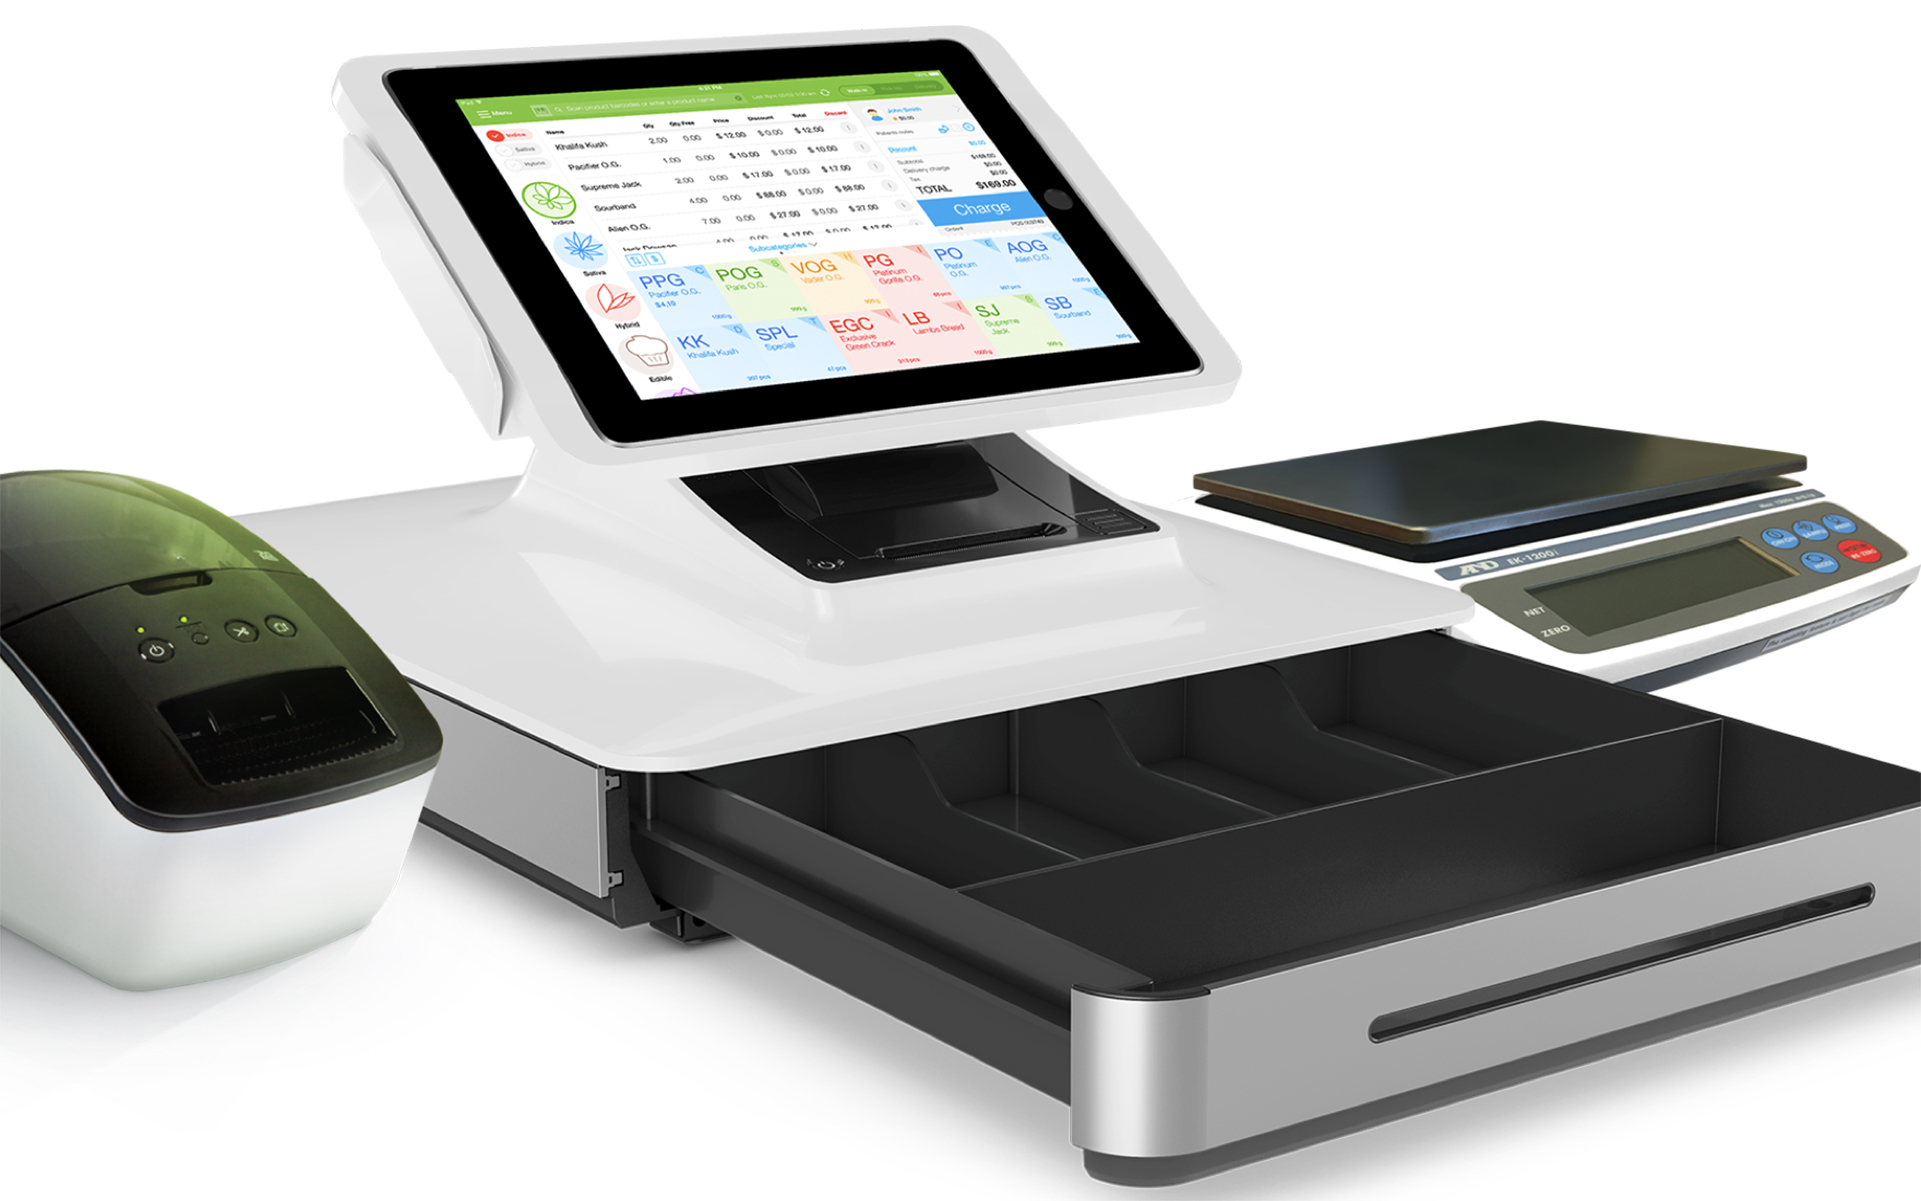 indicaOnline point-of-sale unit with printer, scale, and cash register